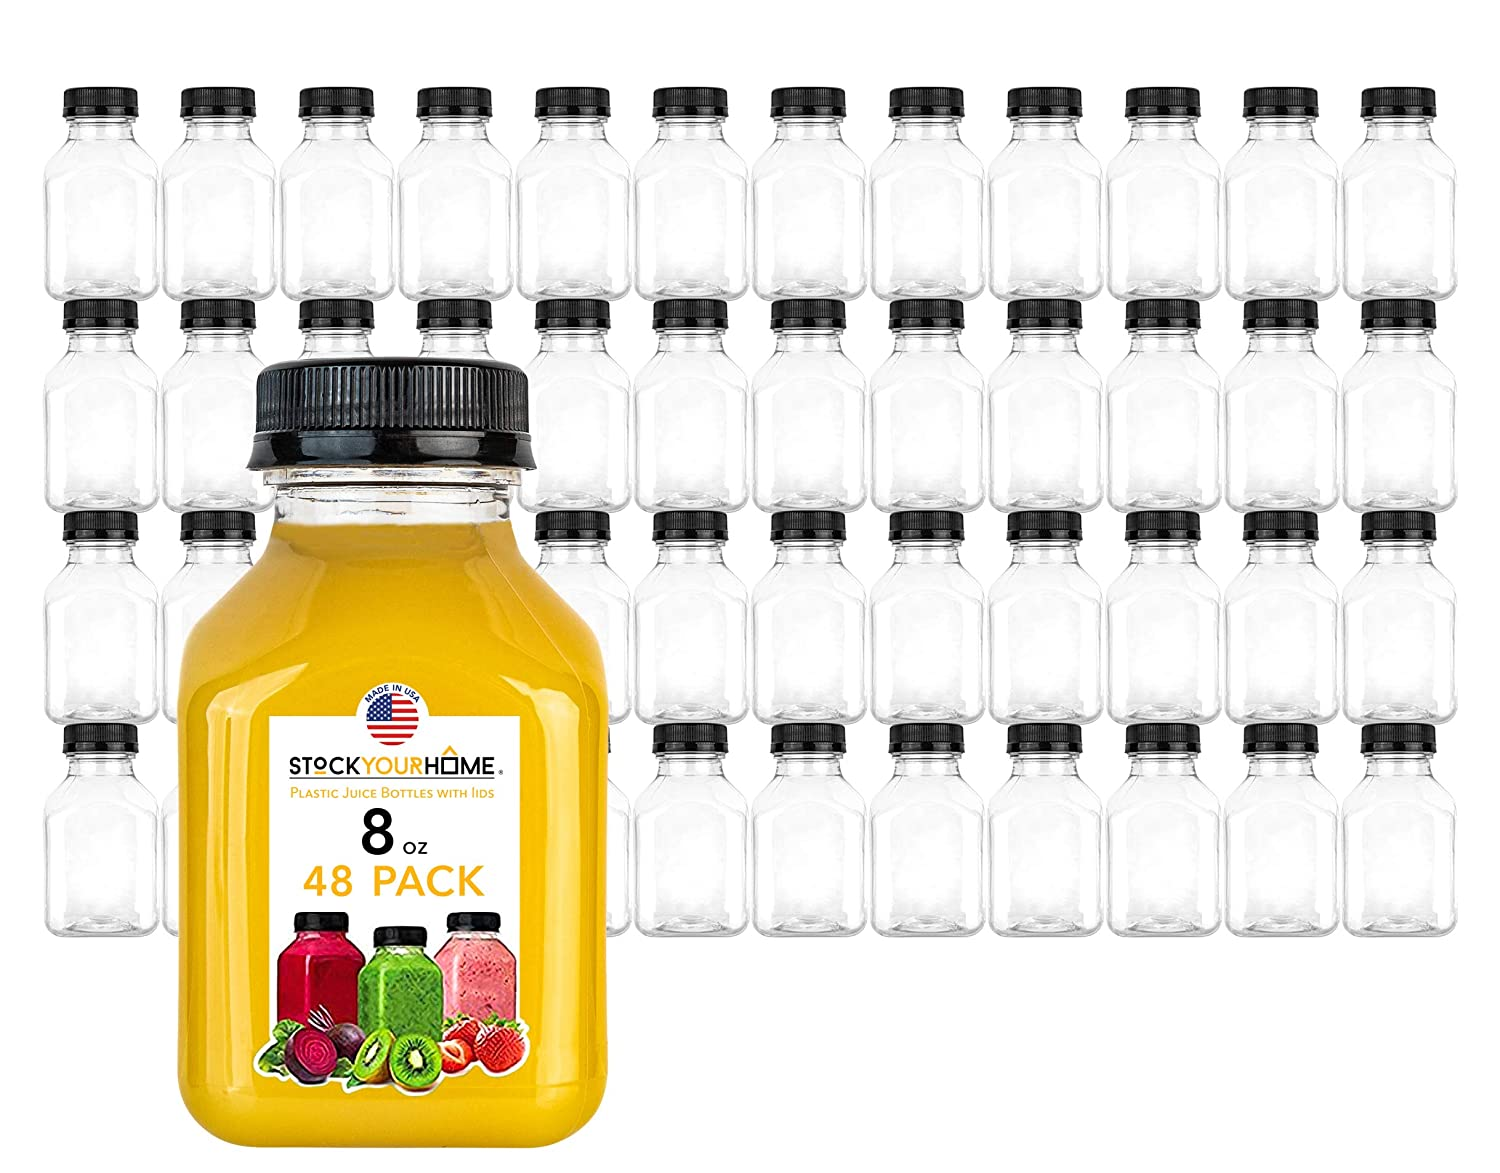 Stock Your Home Plastic Juice Bottles 8 Oz with Lids, Juice Drink Containers with Caps for Juicing Smoothie Drinking Cold Beverages, 8 Oz Bottles with Caps, 48 Count